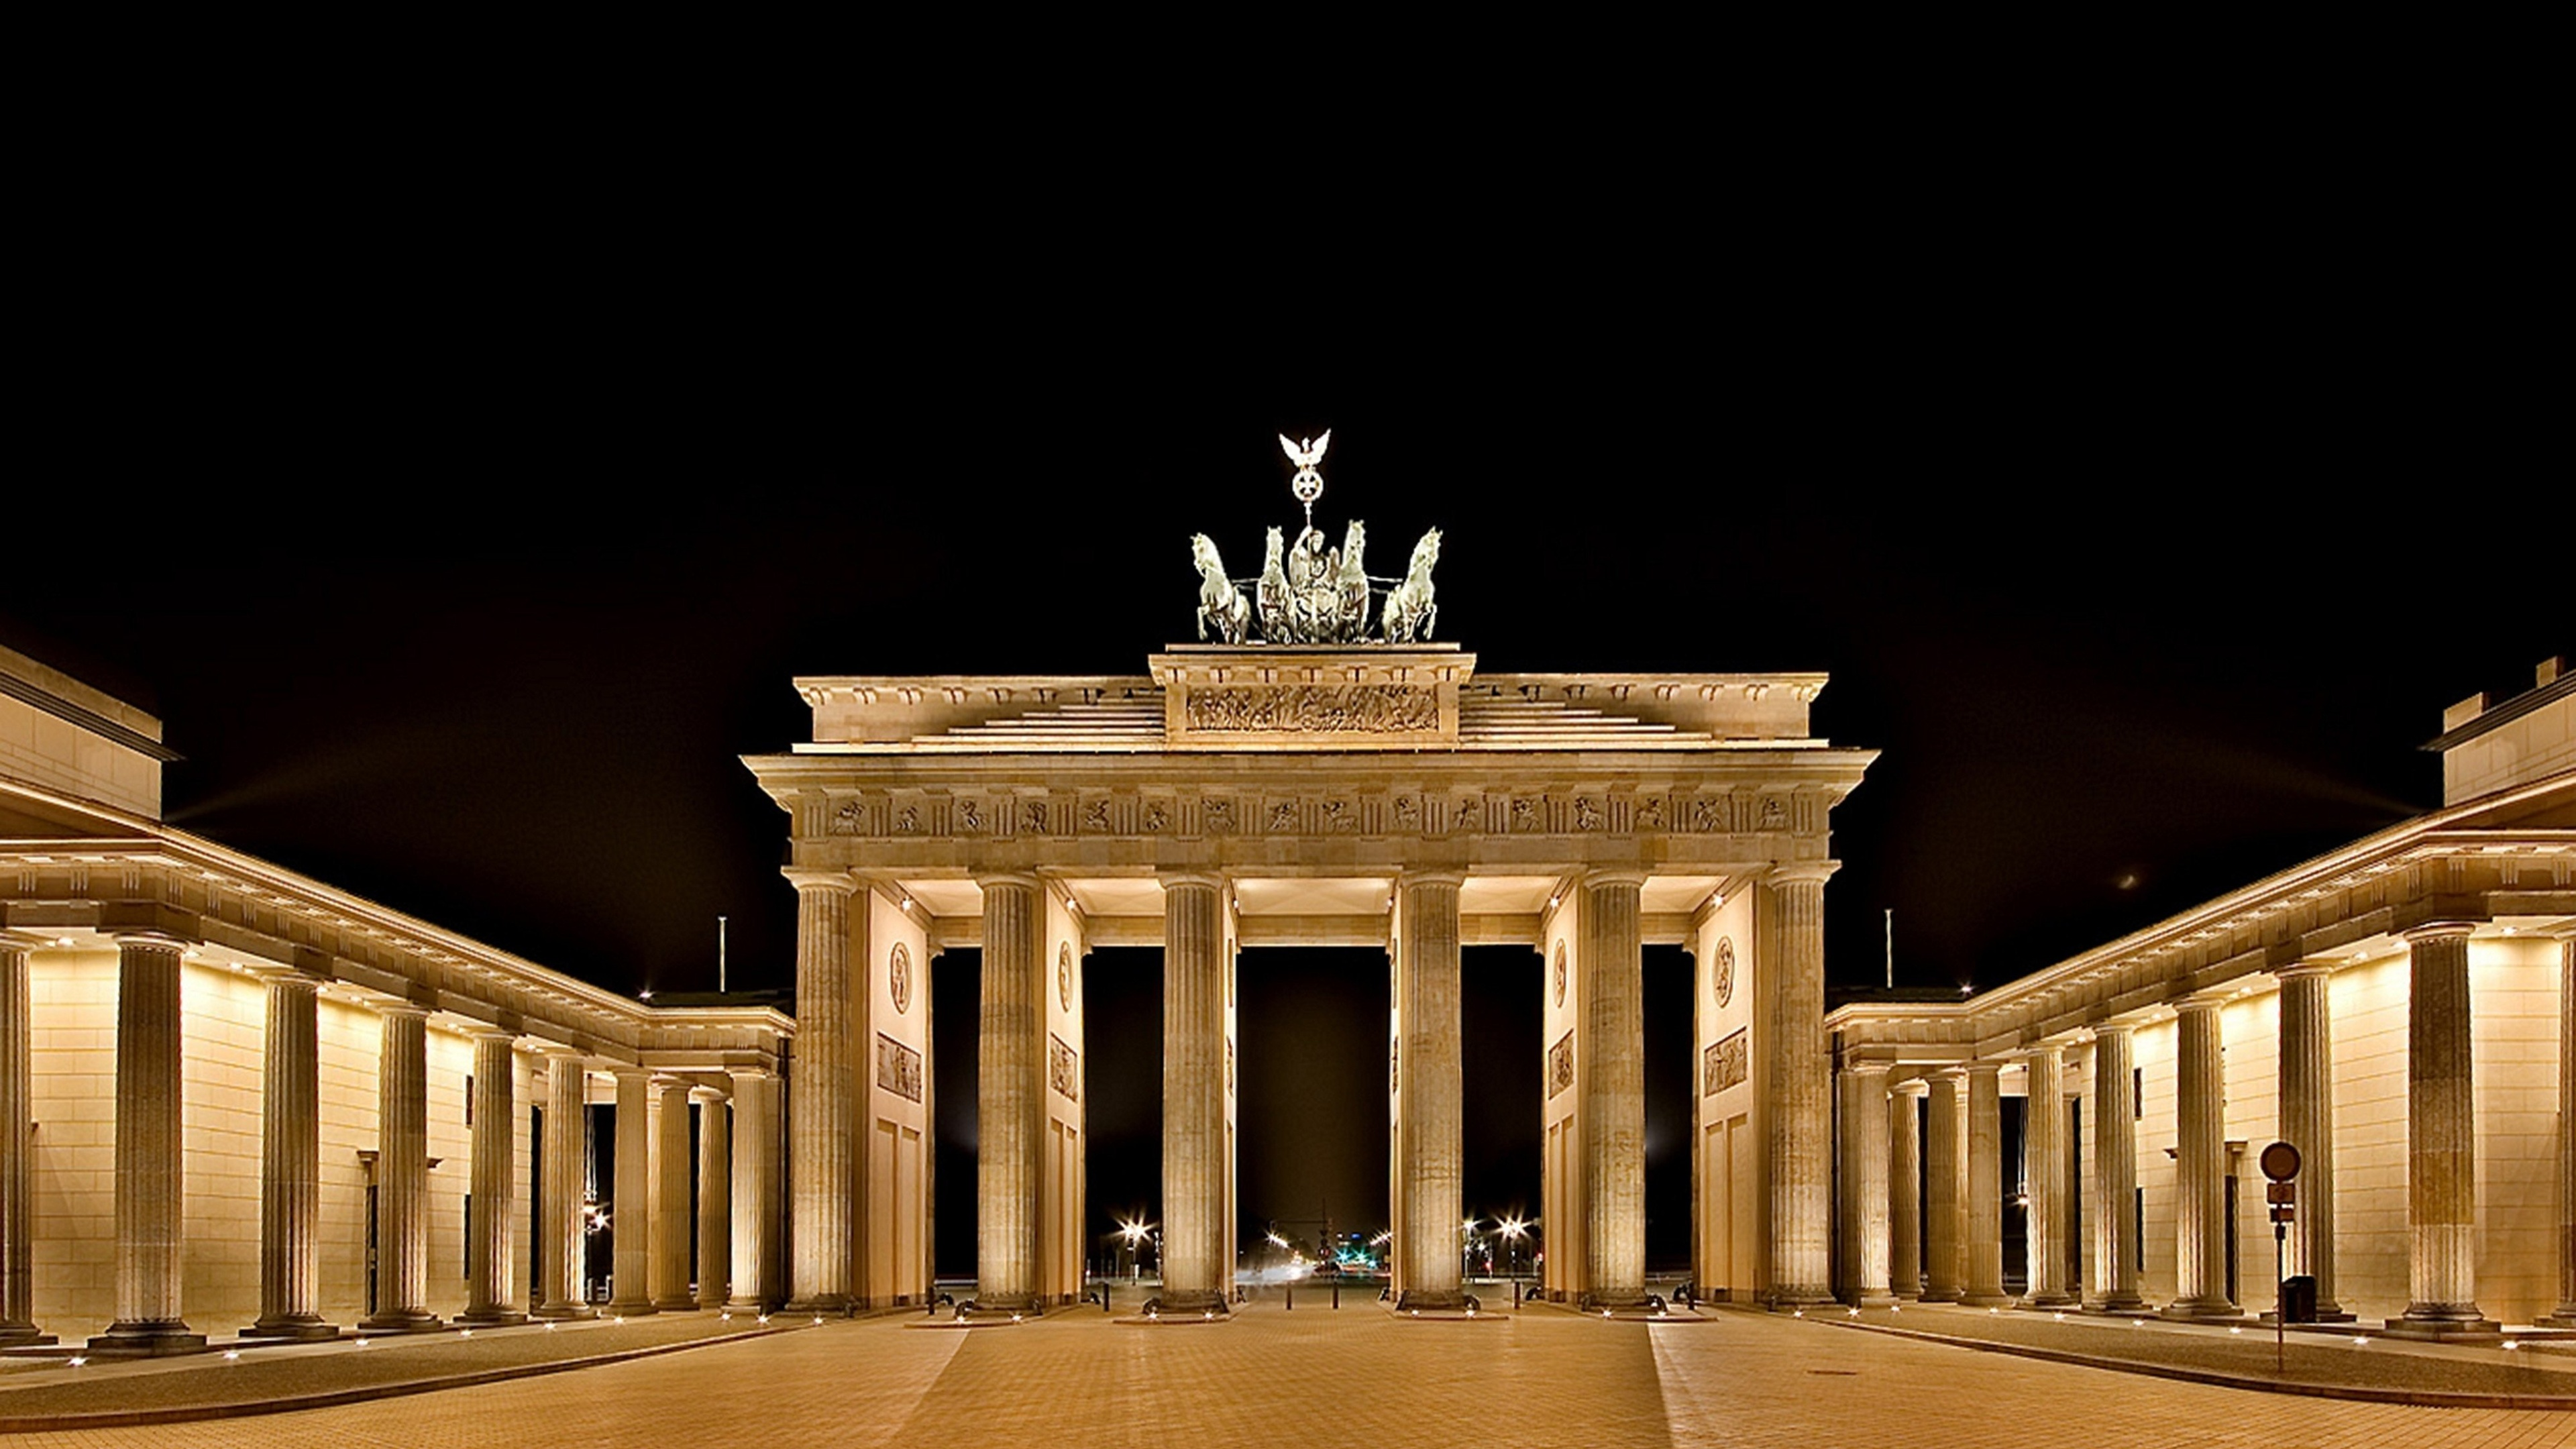 Brandenburg Gate 4K Ultra HD wallpapers